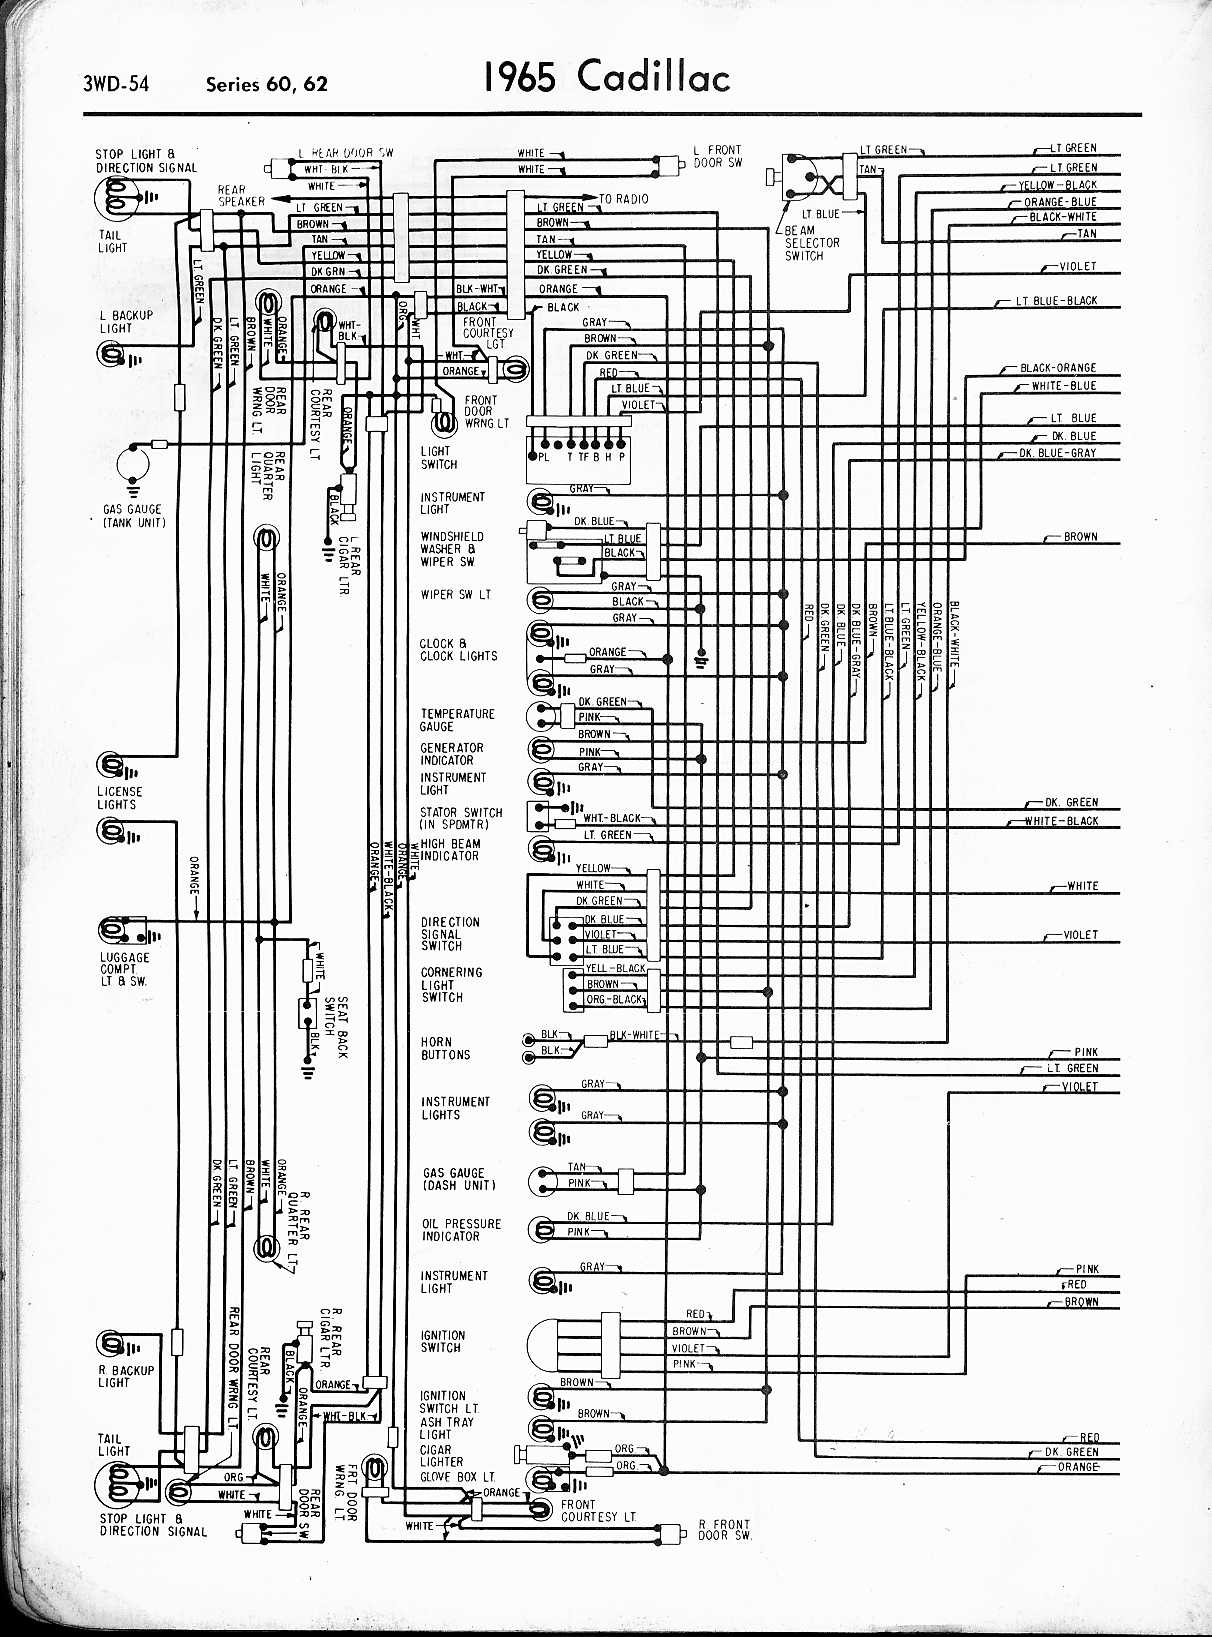 Cadillac Deville Concours Wiring Diagram And Electrical System 2001 Air Pump Diagrams 1957 1965 Rh Oldcarmanualproject Com